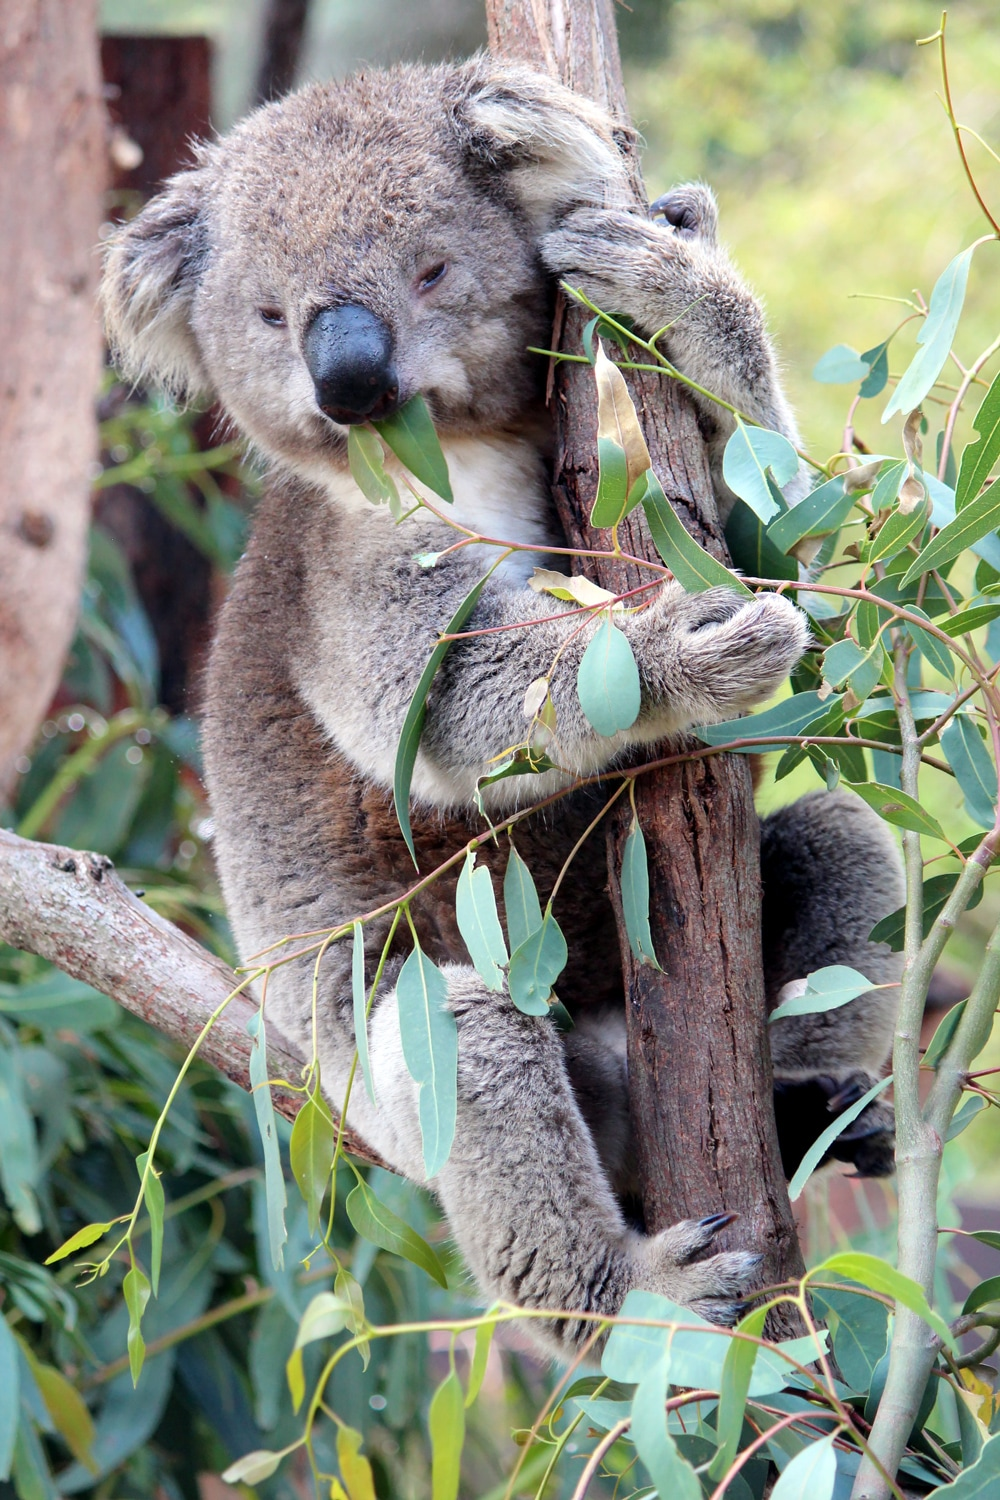 Australian wildlife: Koala eating gum leaves in a tree at Healesville Sanctuary.